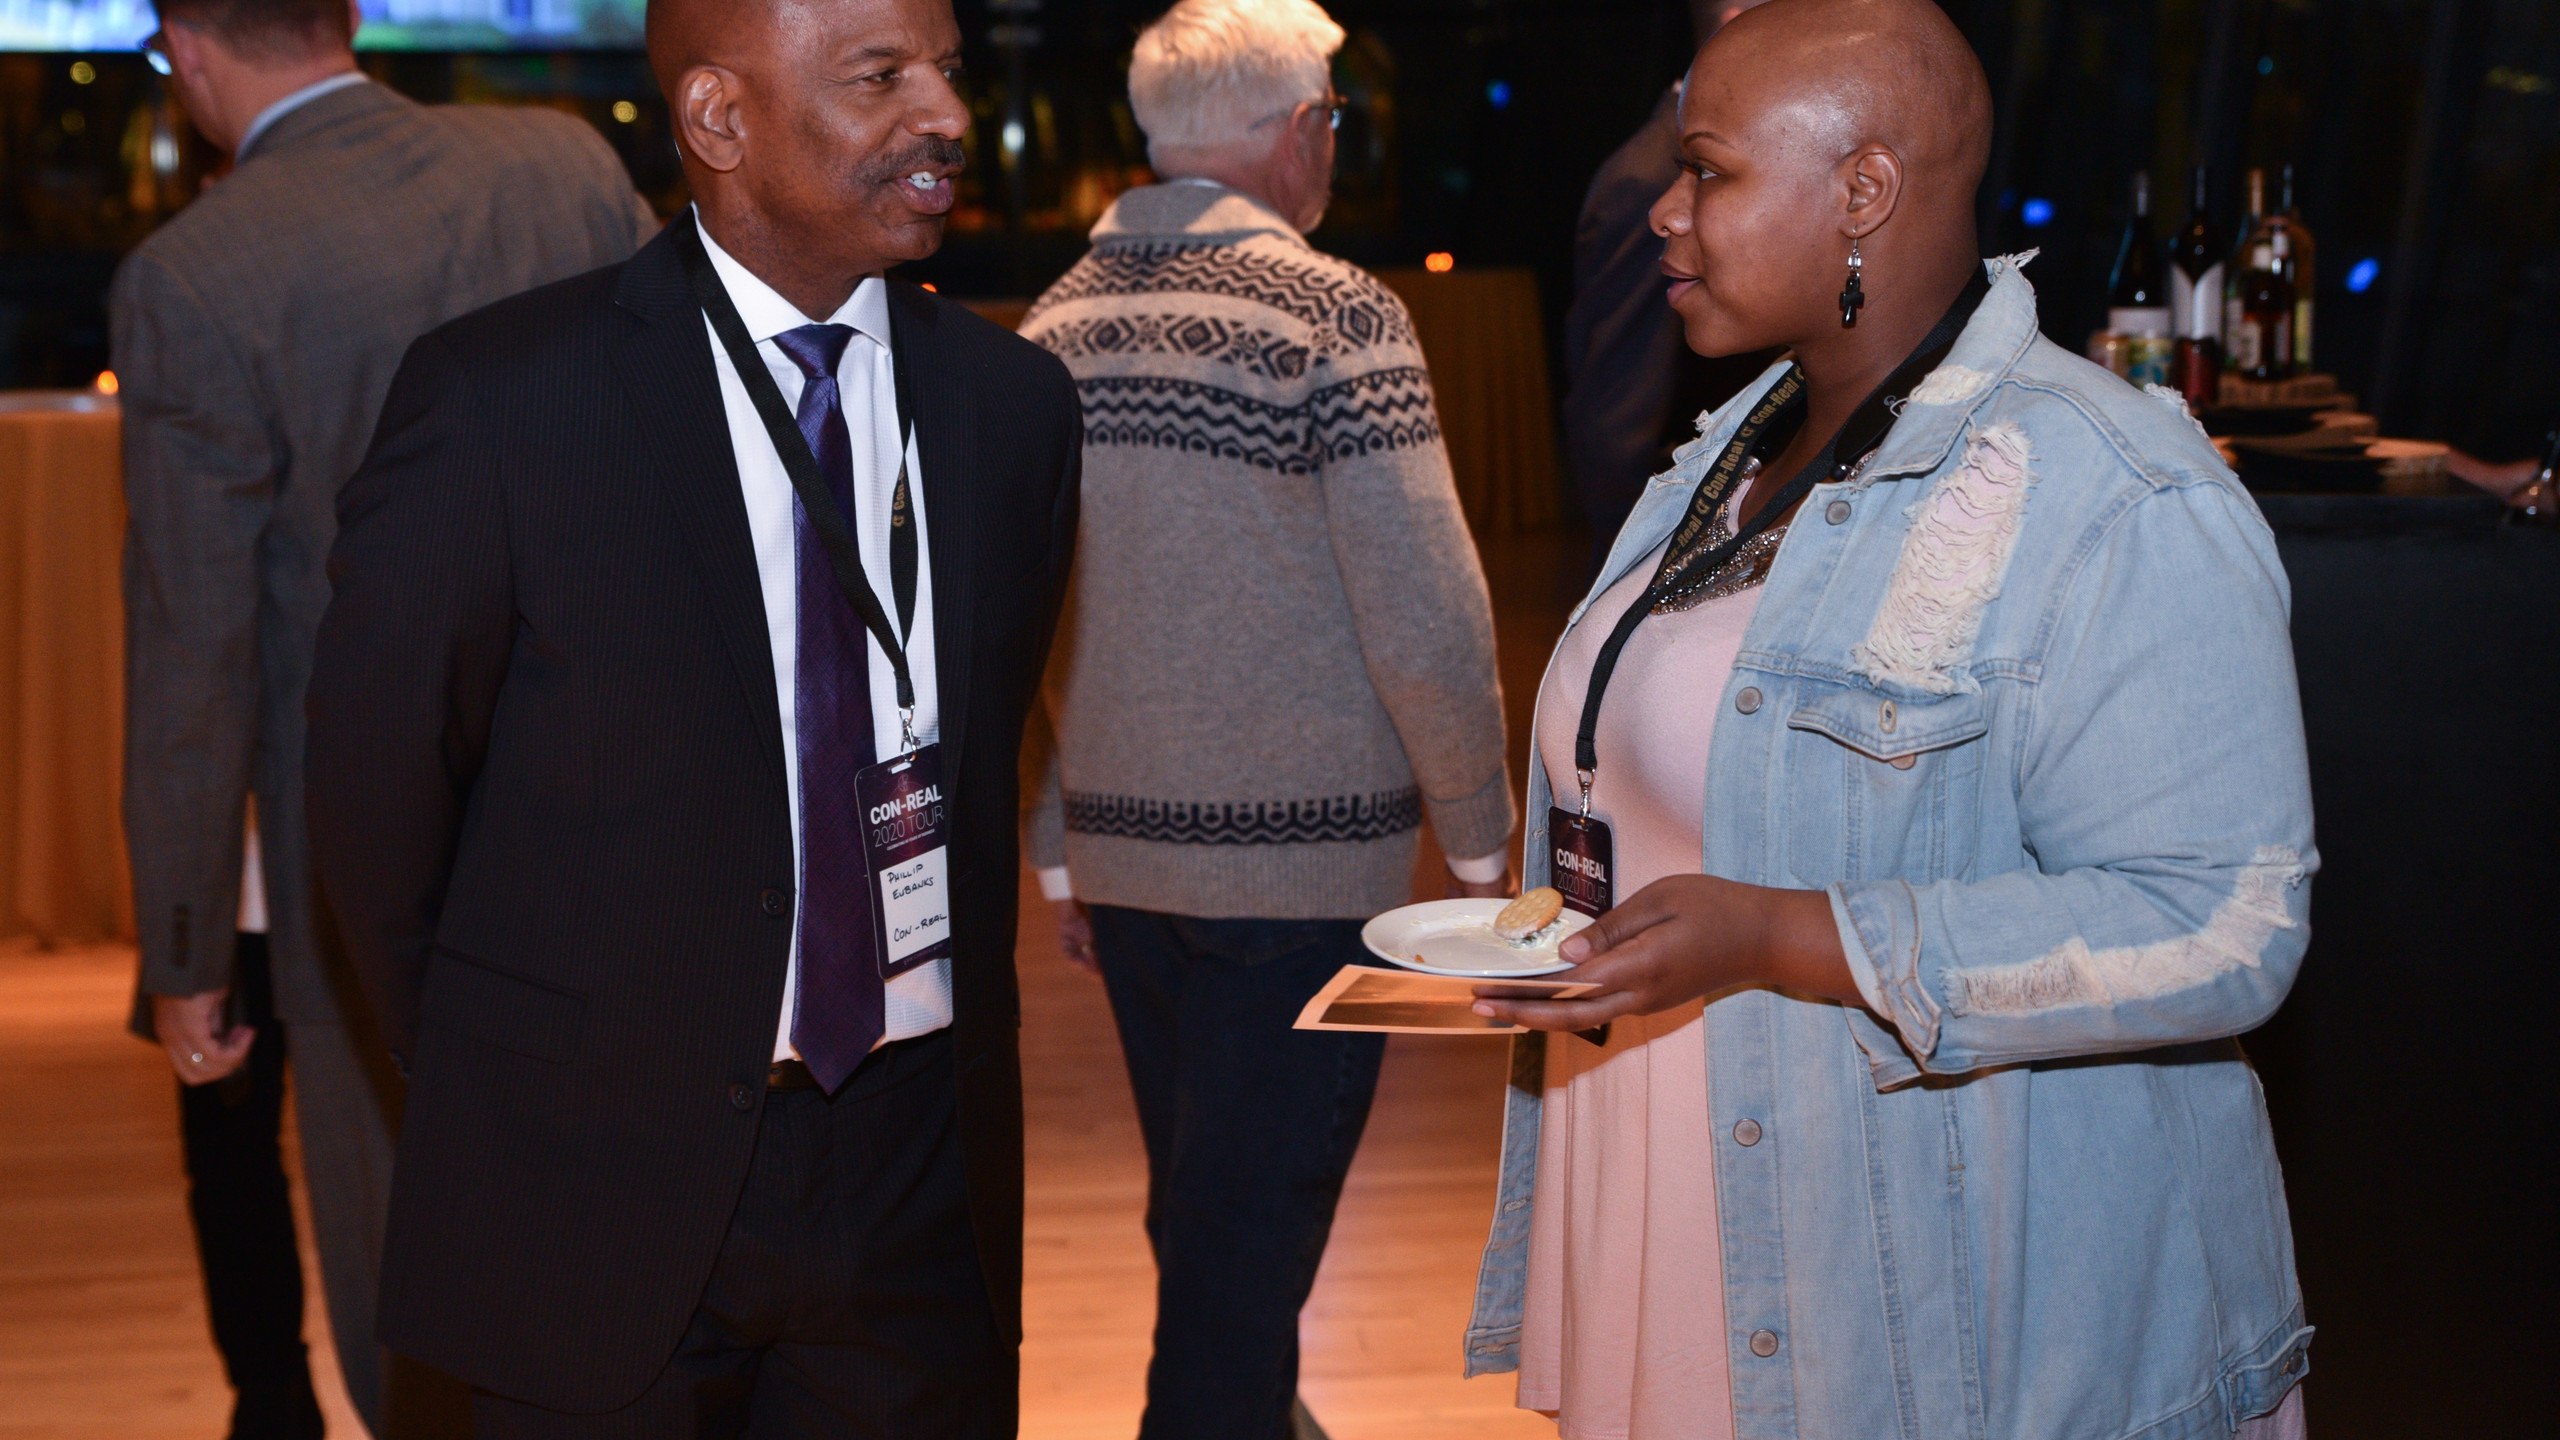 Two event attendees talking